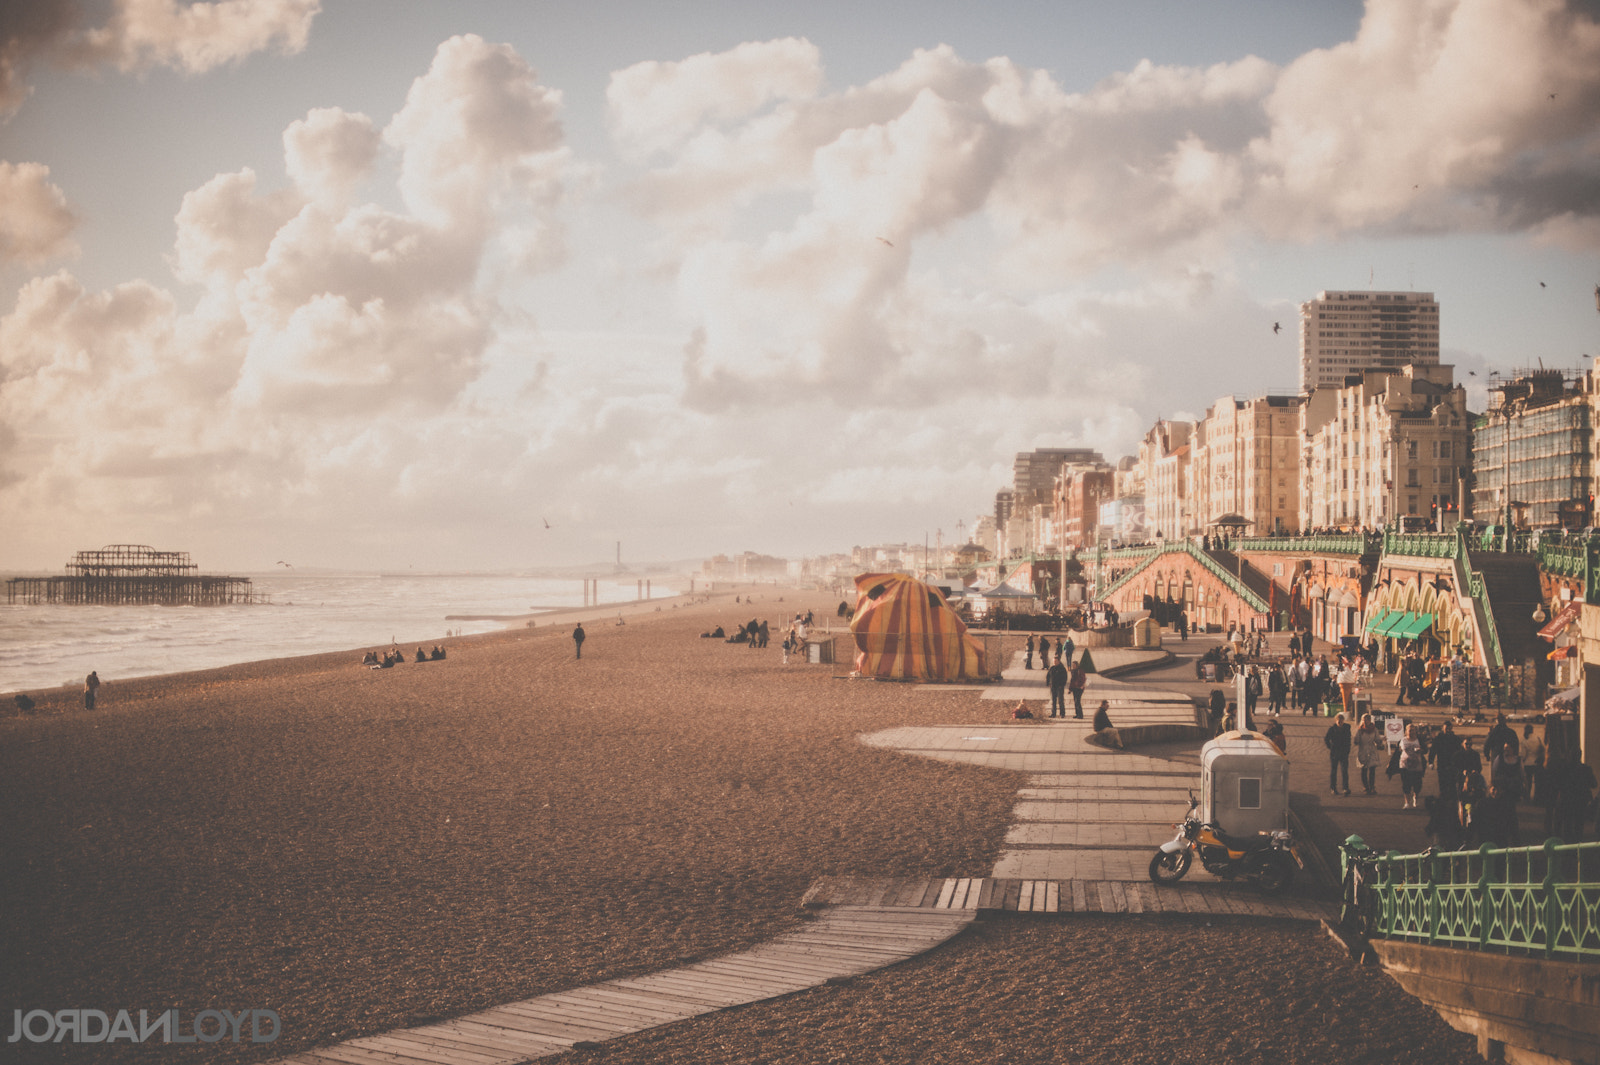 Photograph Brighton by Jordan Loyd on 500px